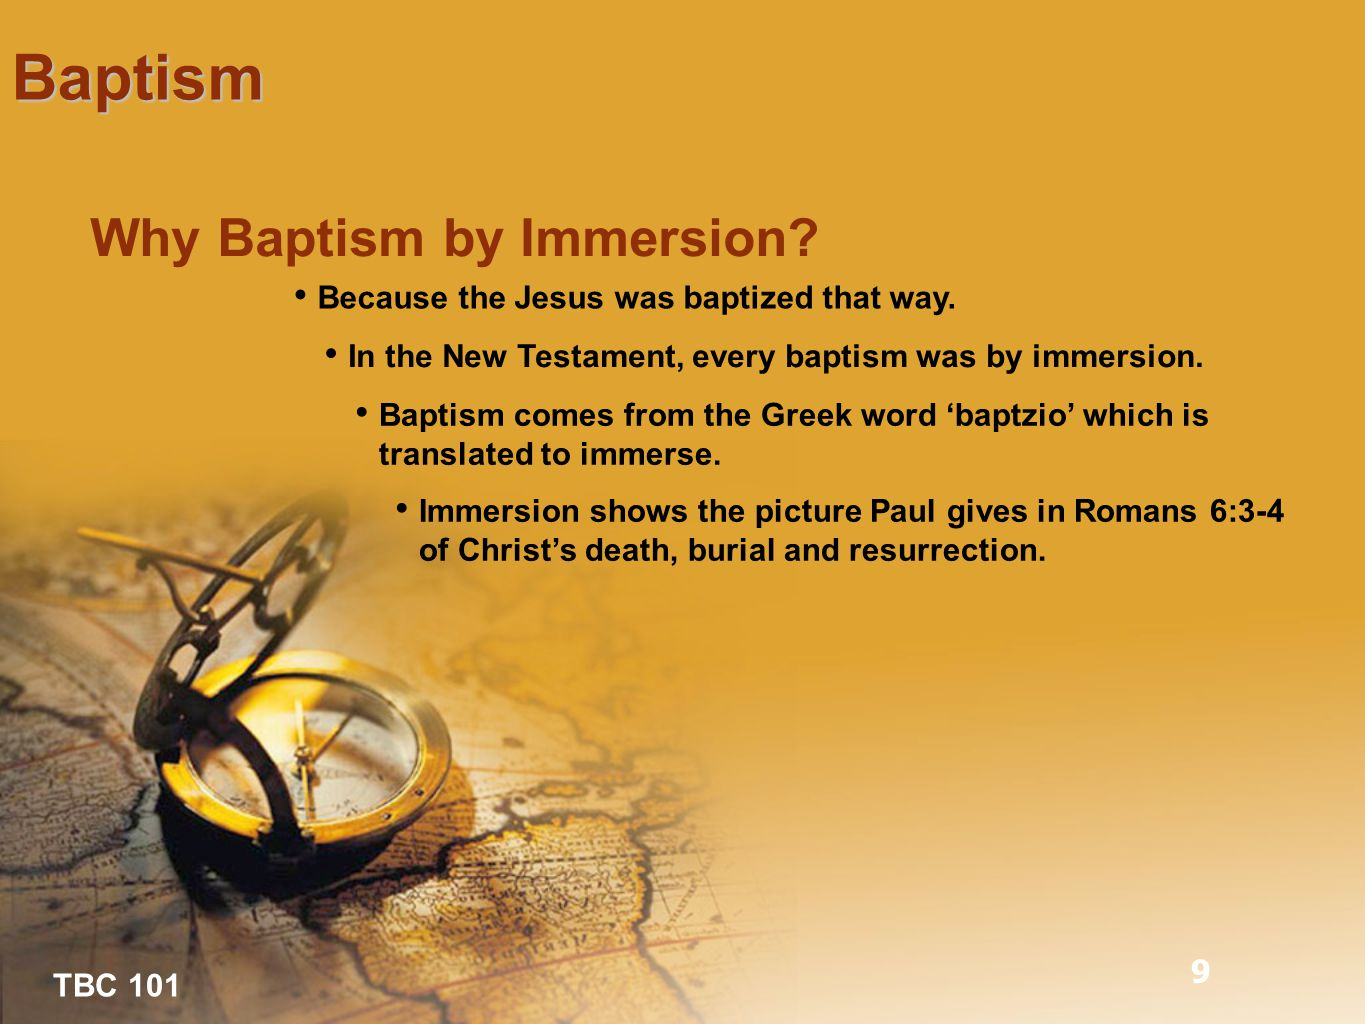 TBC 101 Baptism Why Baptism by Immersion. Because the Jesus was baptized that way.